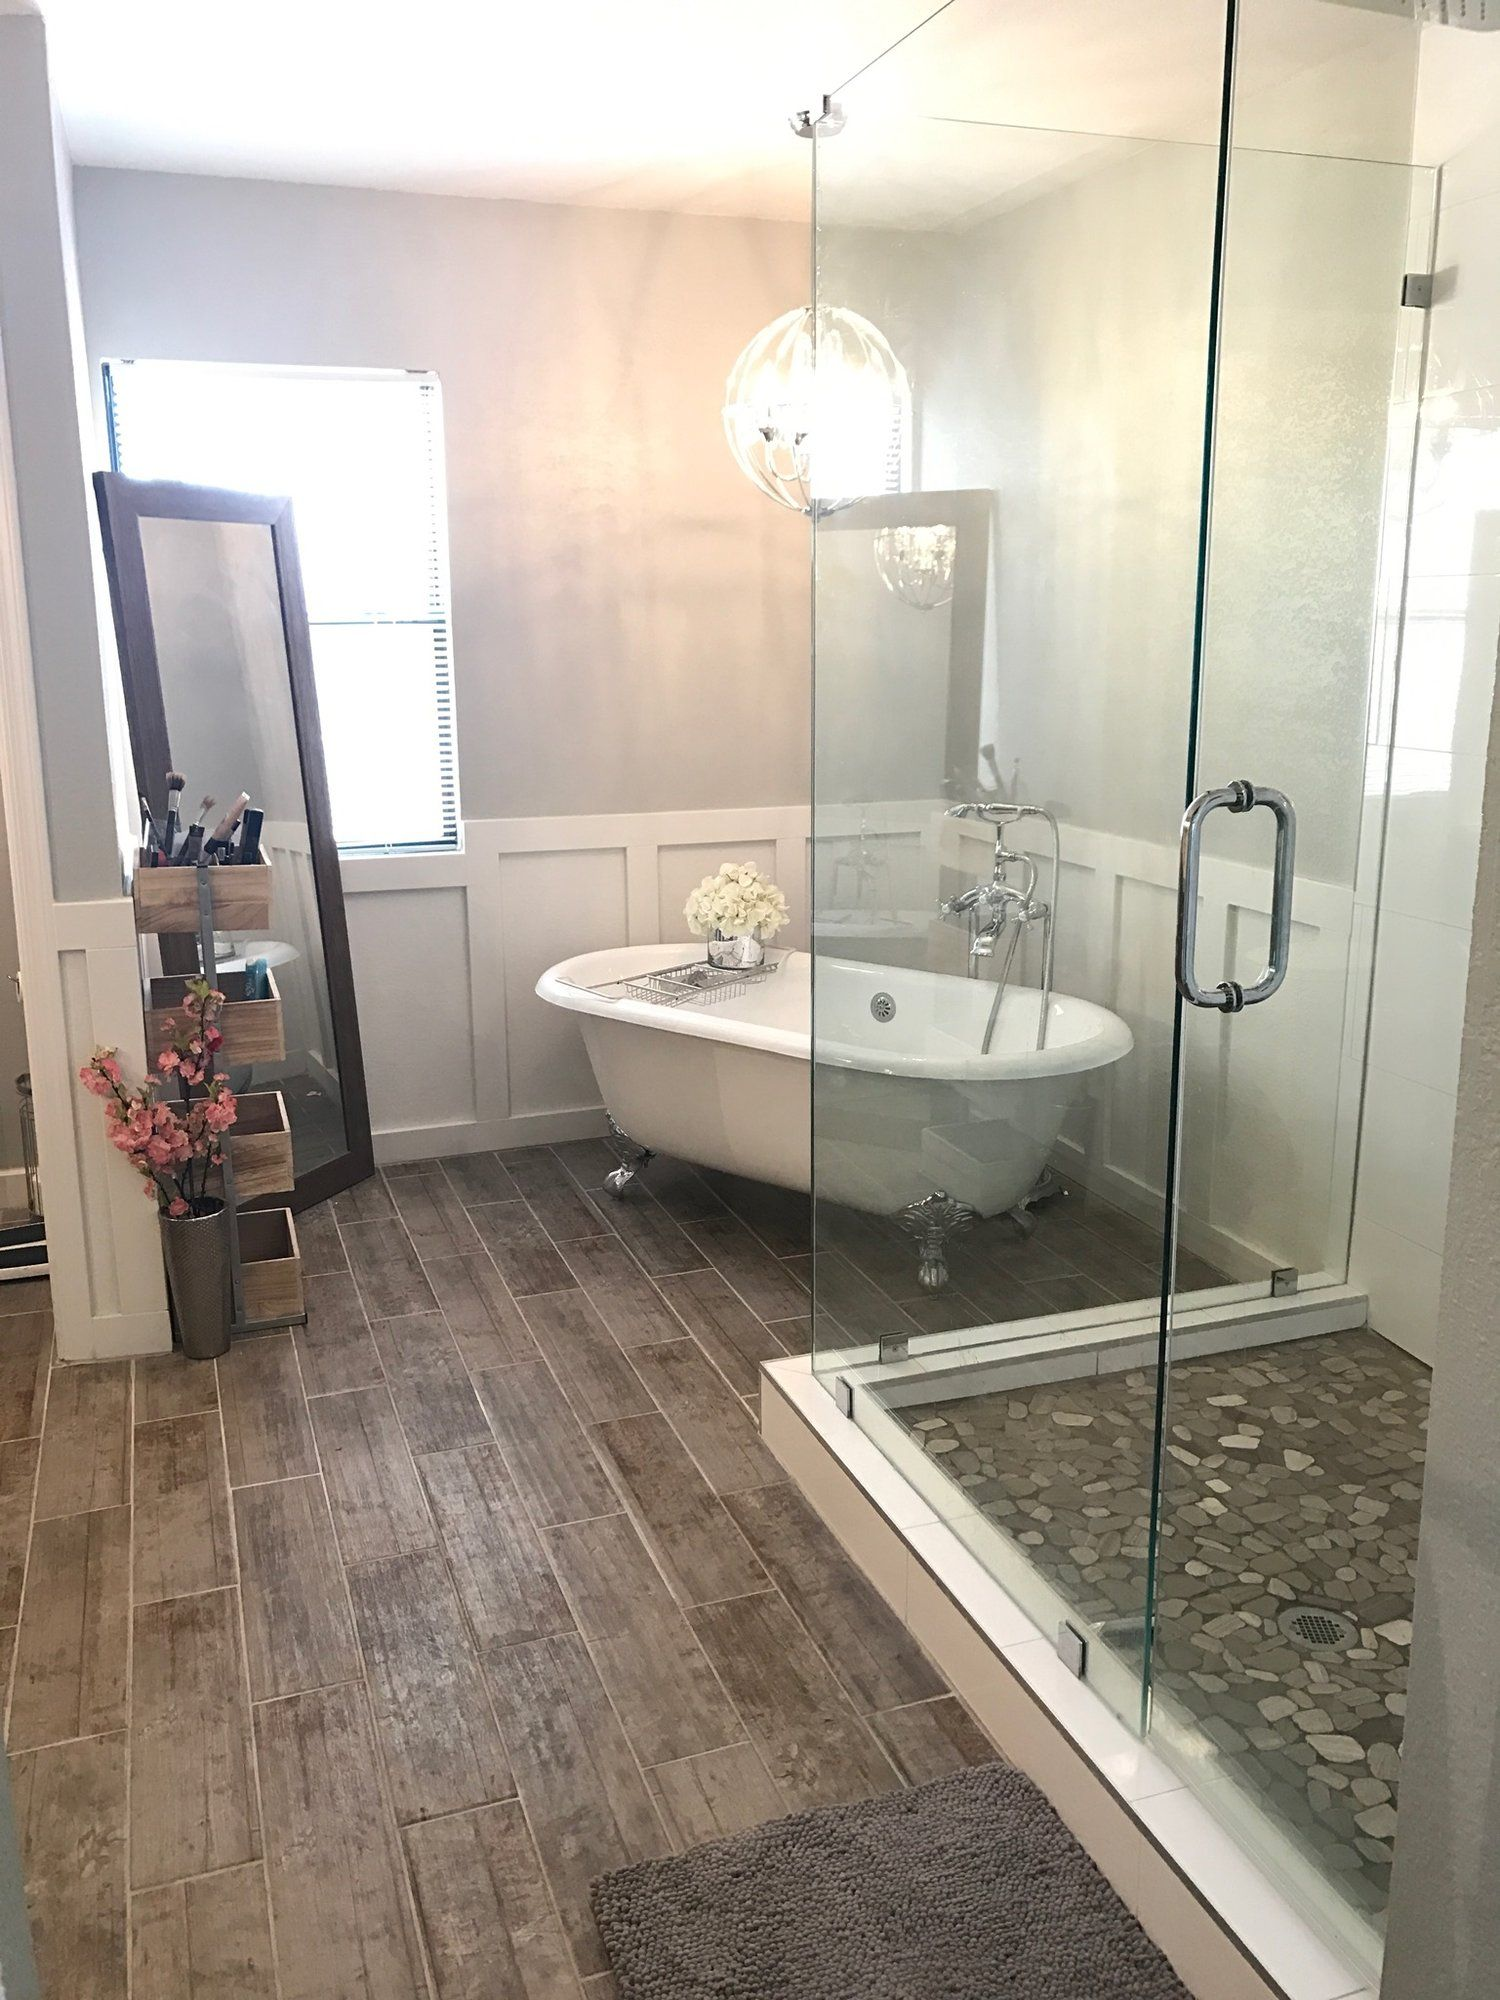 Unique Features You Should Consider Adding To Your Master Bedroom - Bathroom remodel athens ga